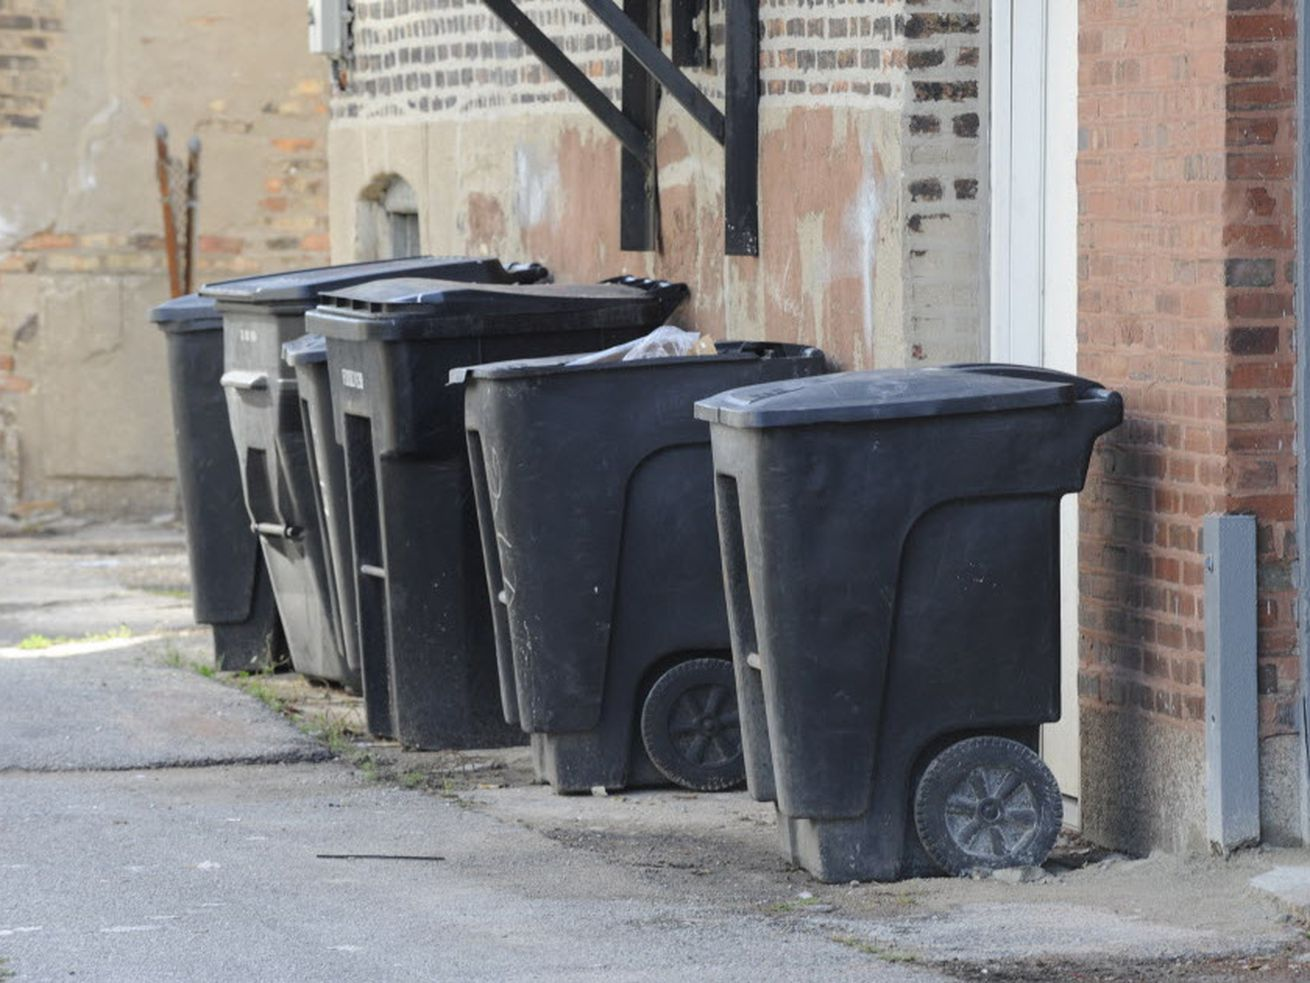 Garbage bins in a Chicago alley